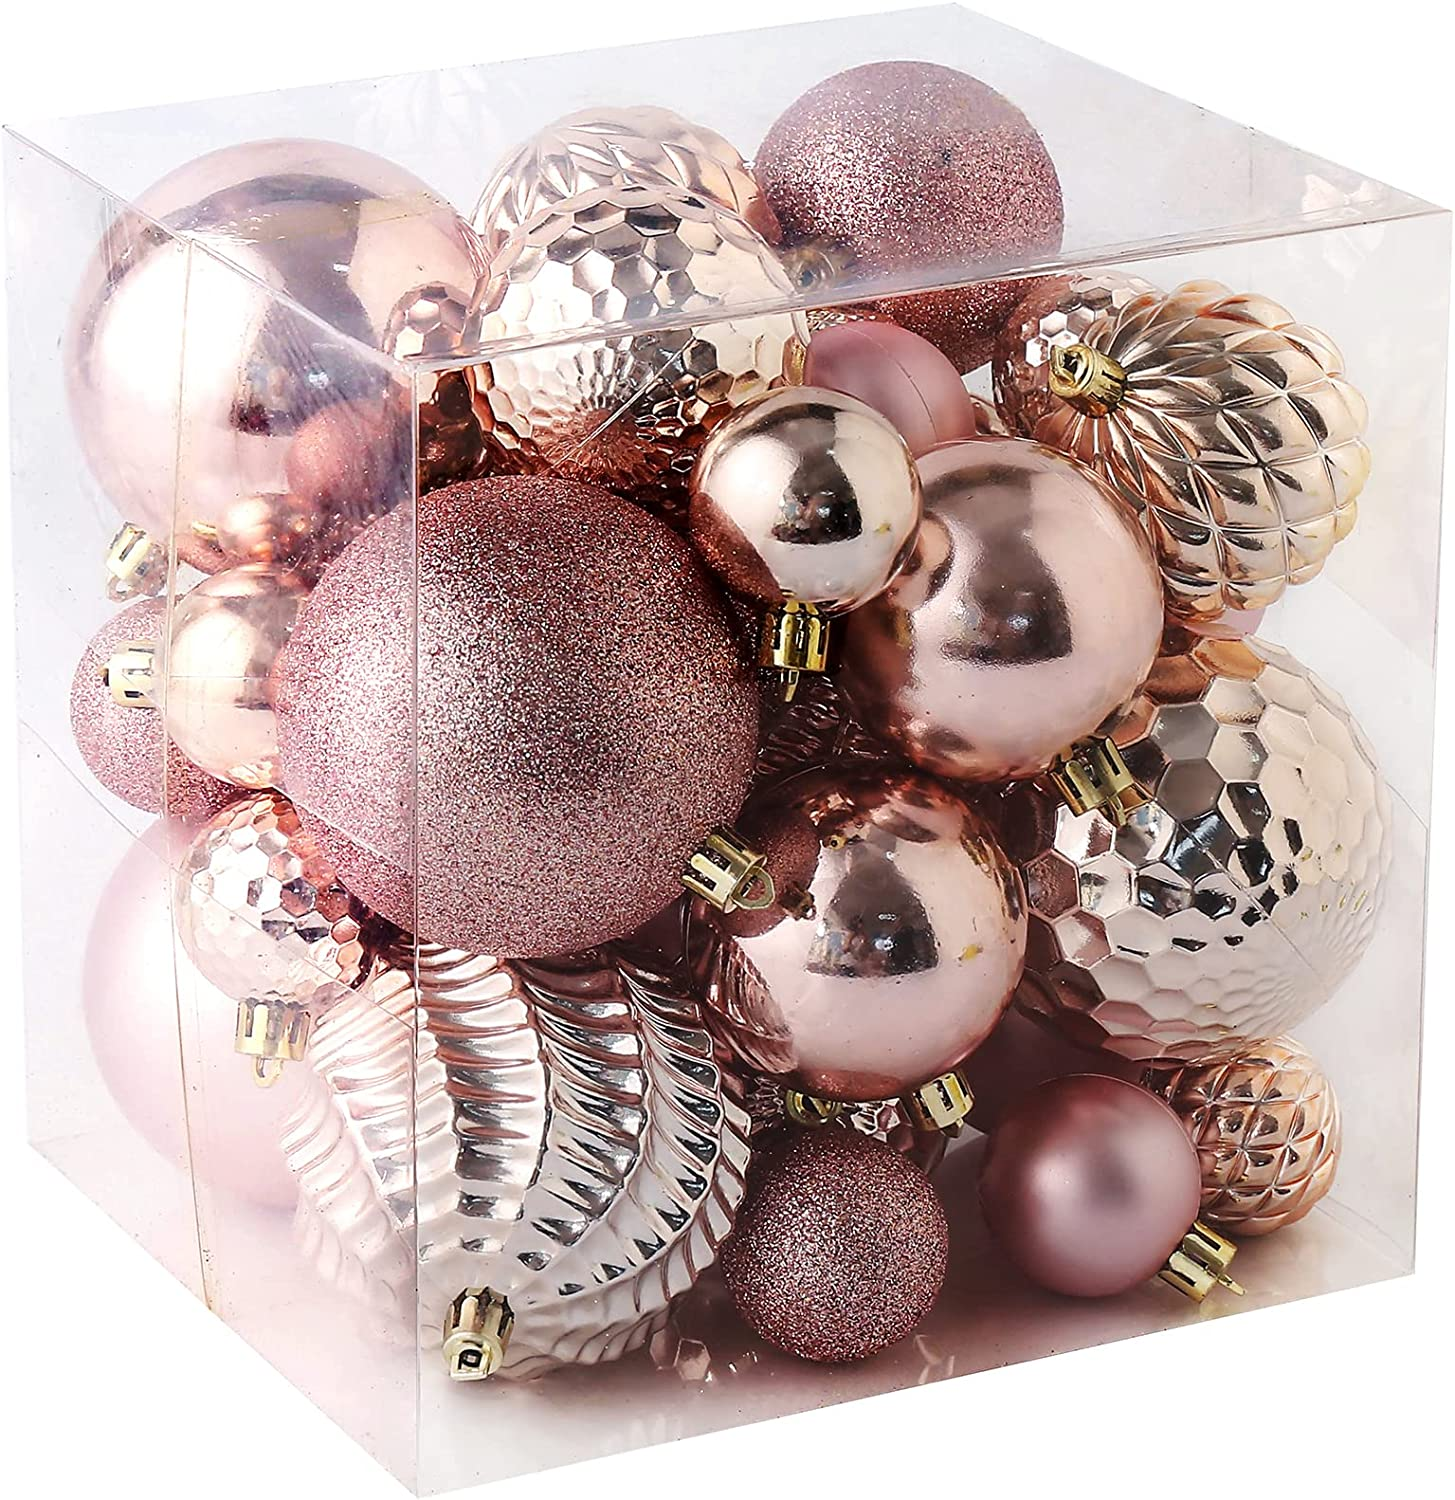 Christmas Balls Ornaments -36pcs Shatterproof Christmas Tree Decorations with Hanging Loop for Xmas Tree Wedding Holiday Party Home Decor,6 Styles in 3 Sizes(Rose Gold)